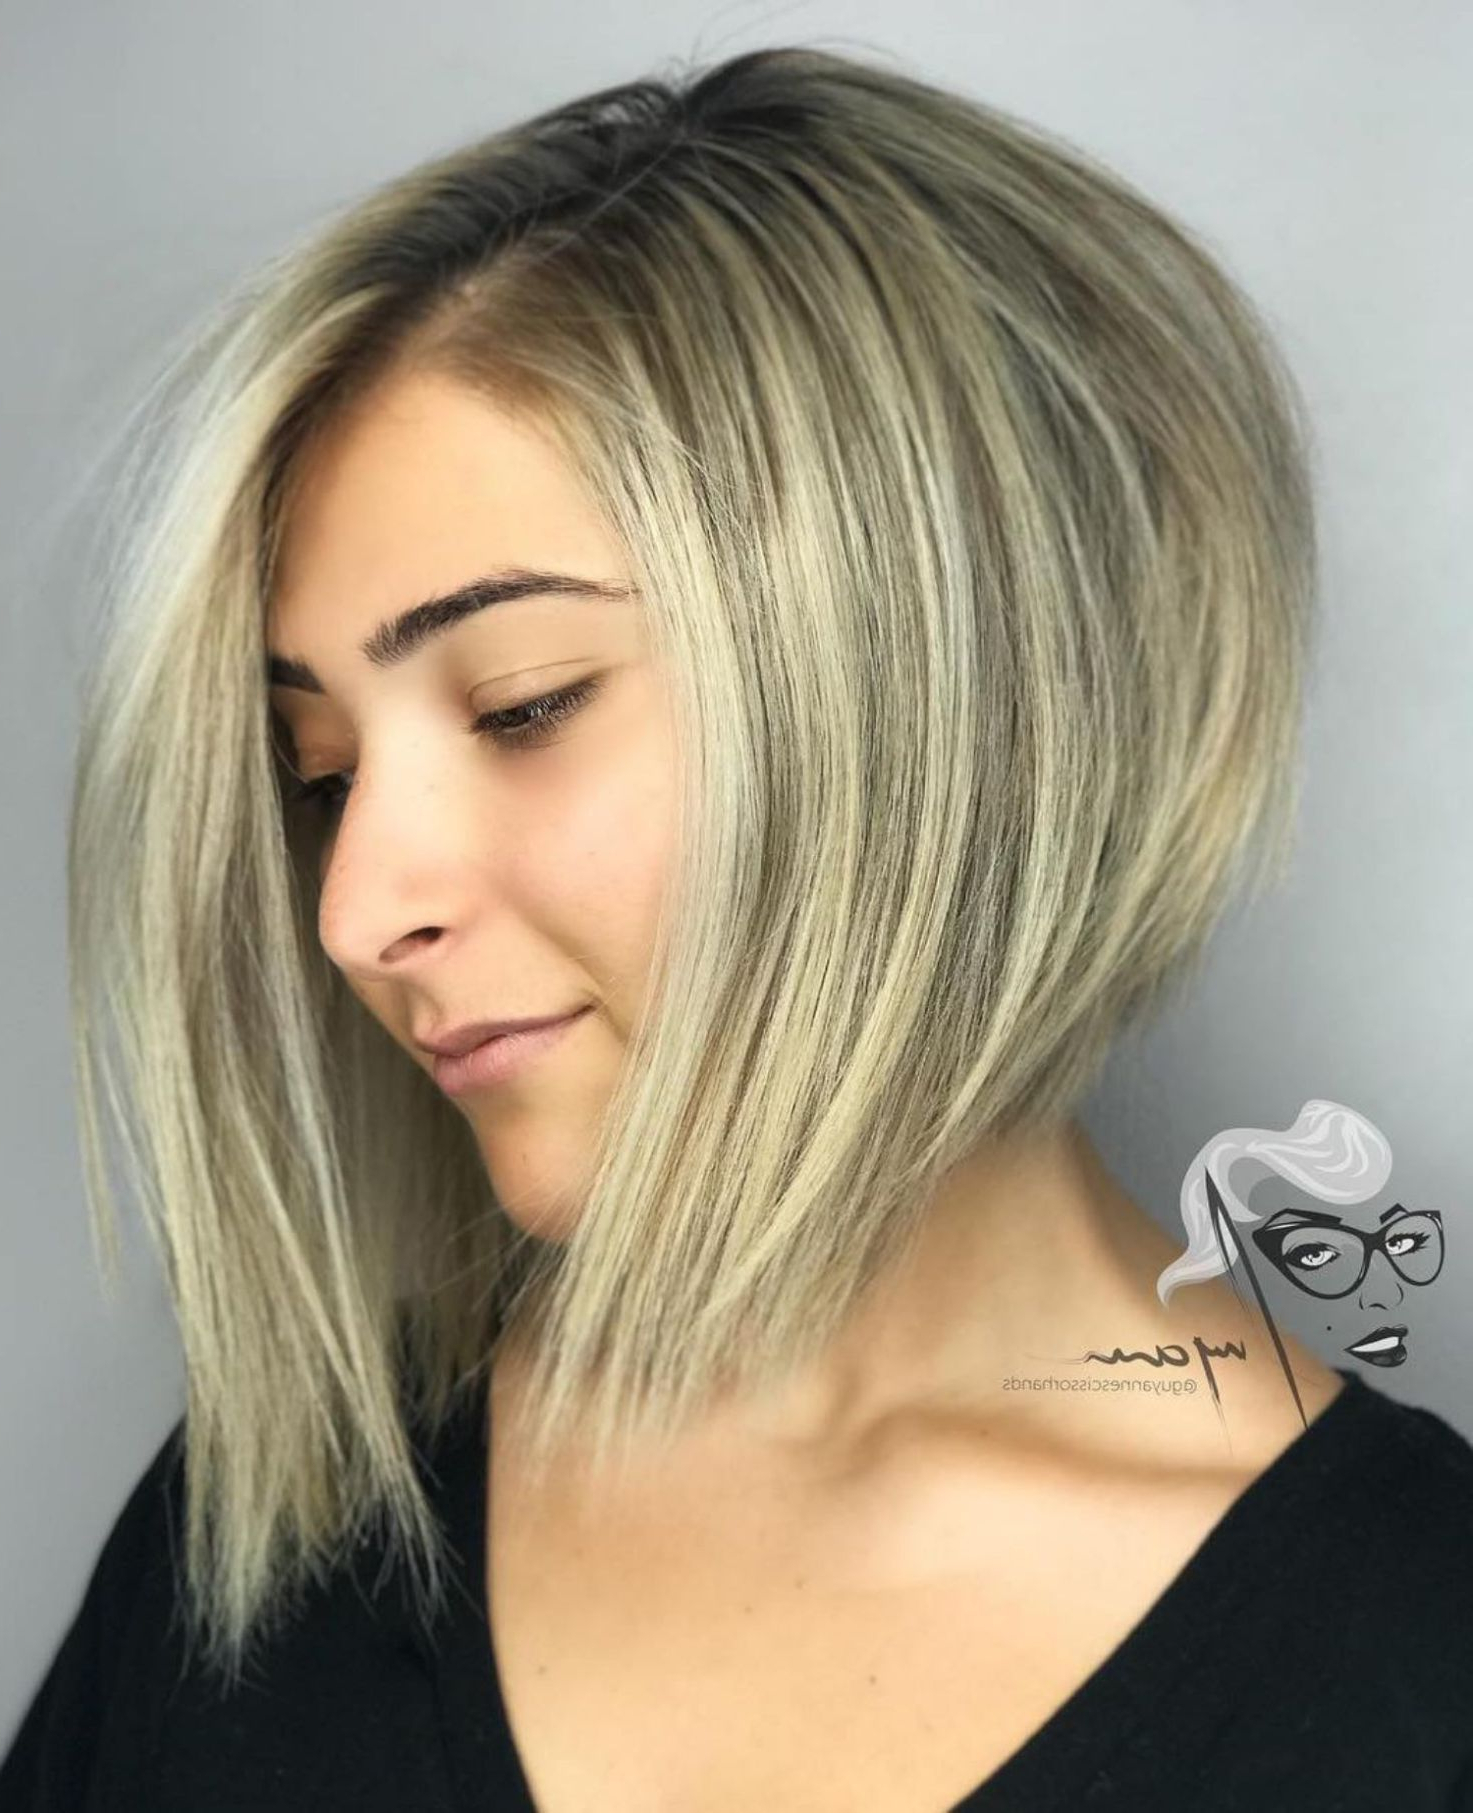 50 Super Cute Looks With Short Hairstyles For Round Faces Within Asymmetrical Shaggy Bob Hairstyles (View 8 of 20)